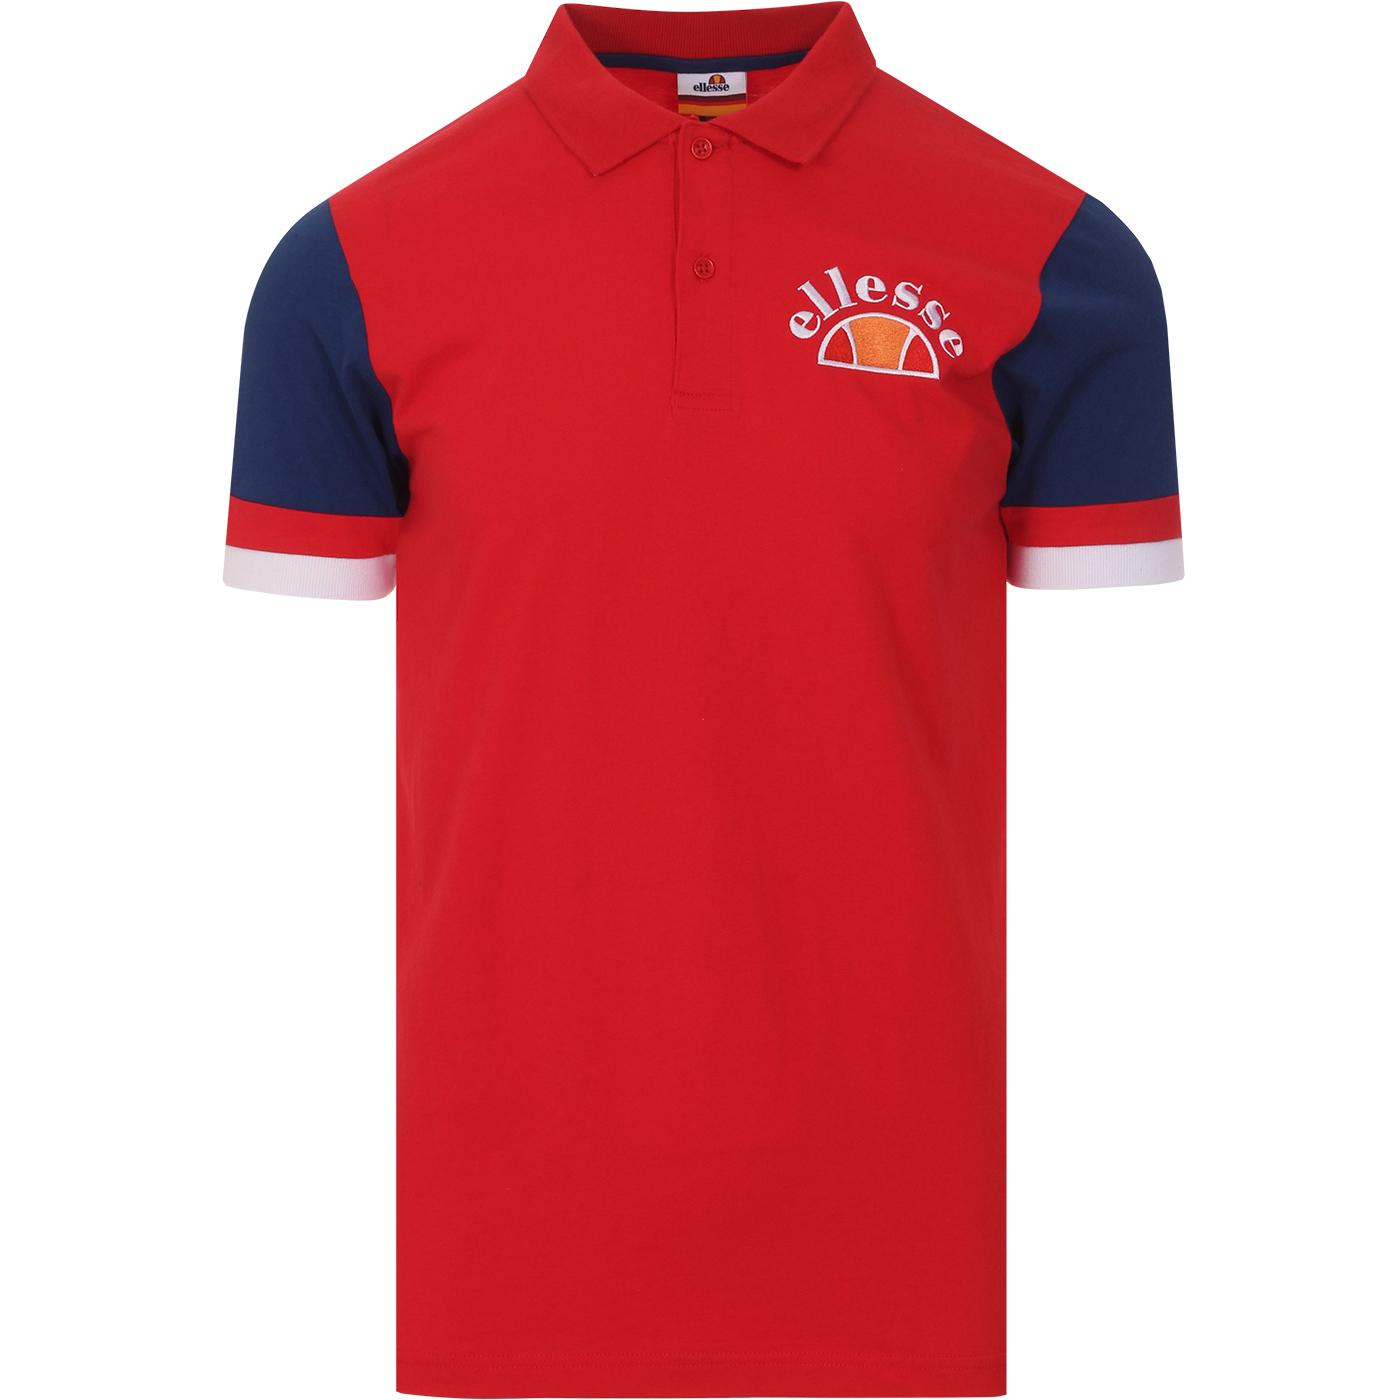 Costa ELLESSE Retro 80s Contrast Sleeve Polo (Red)